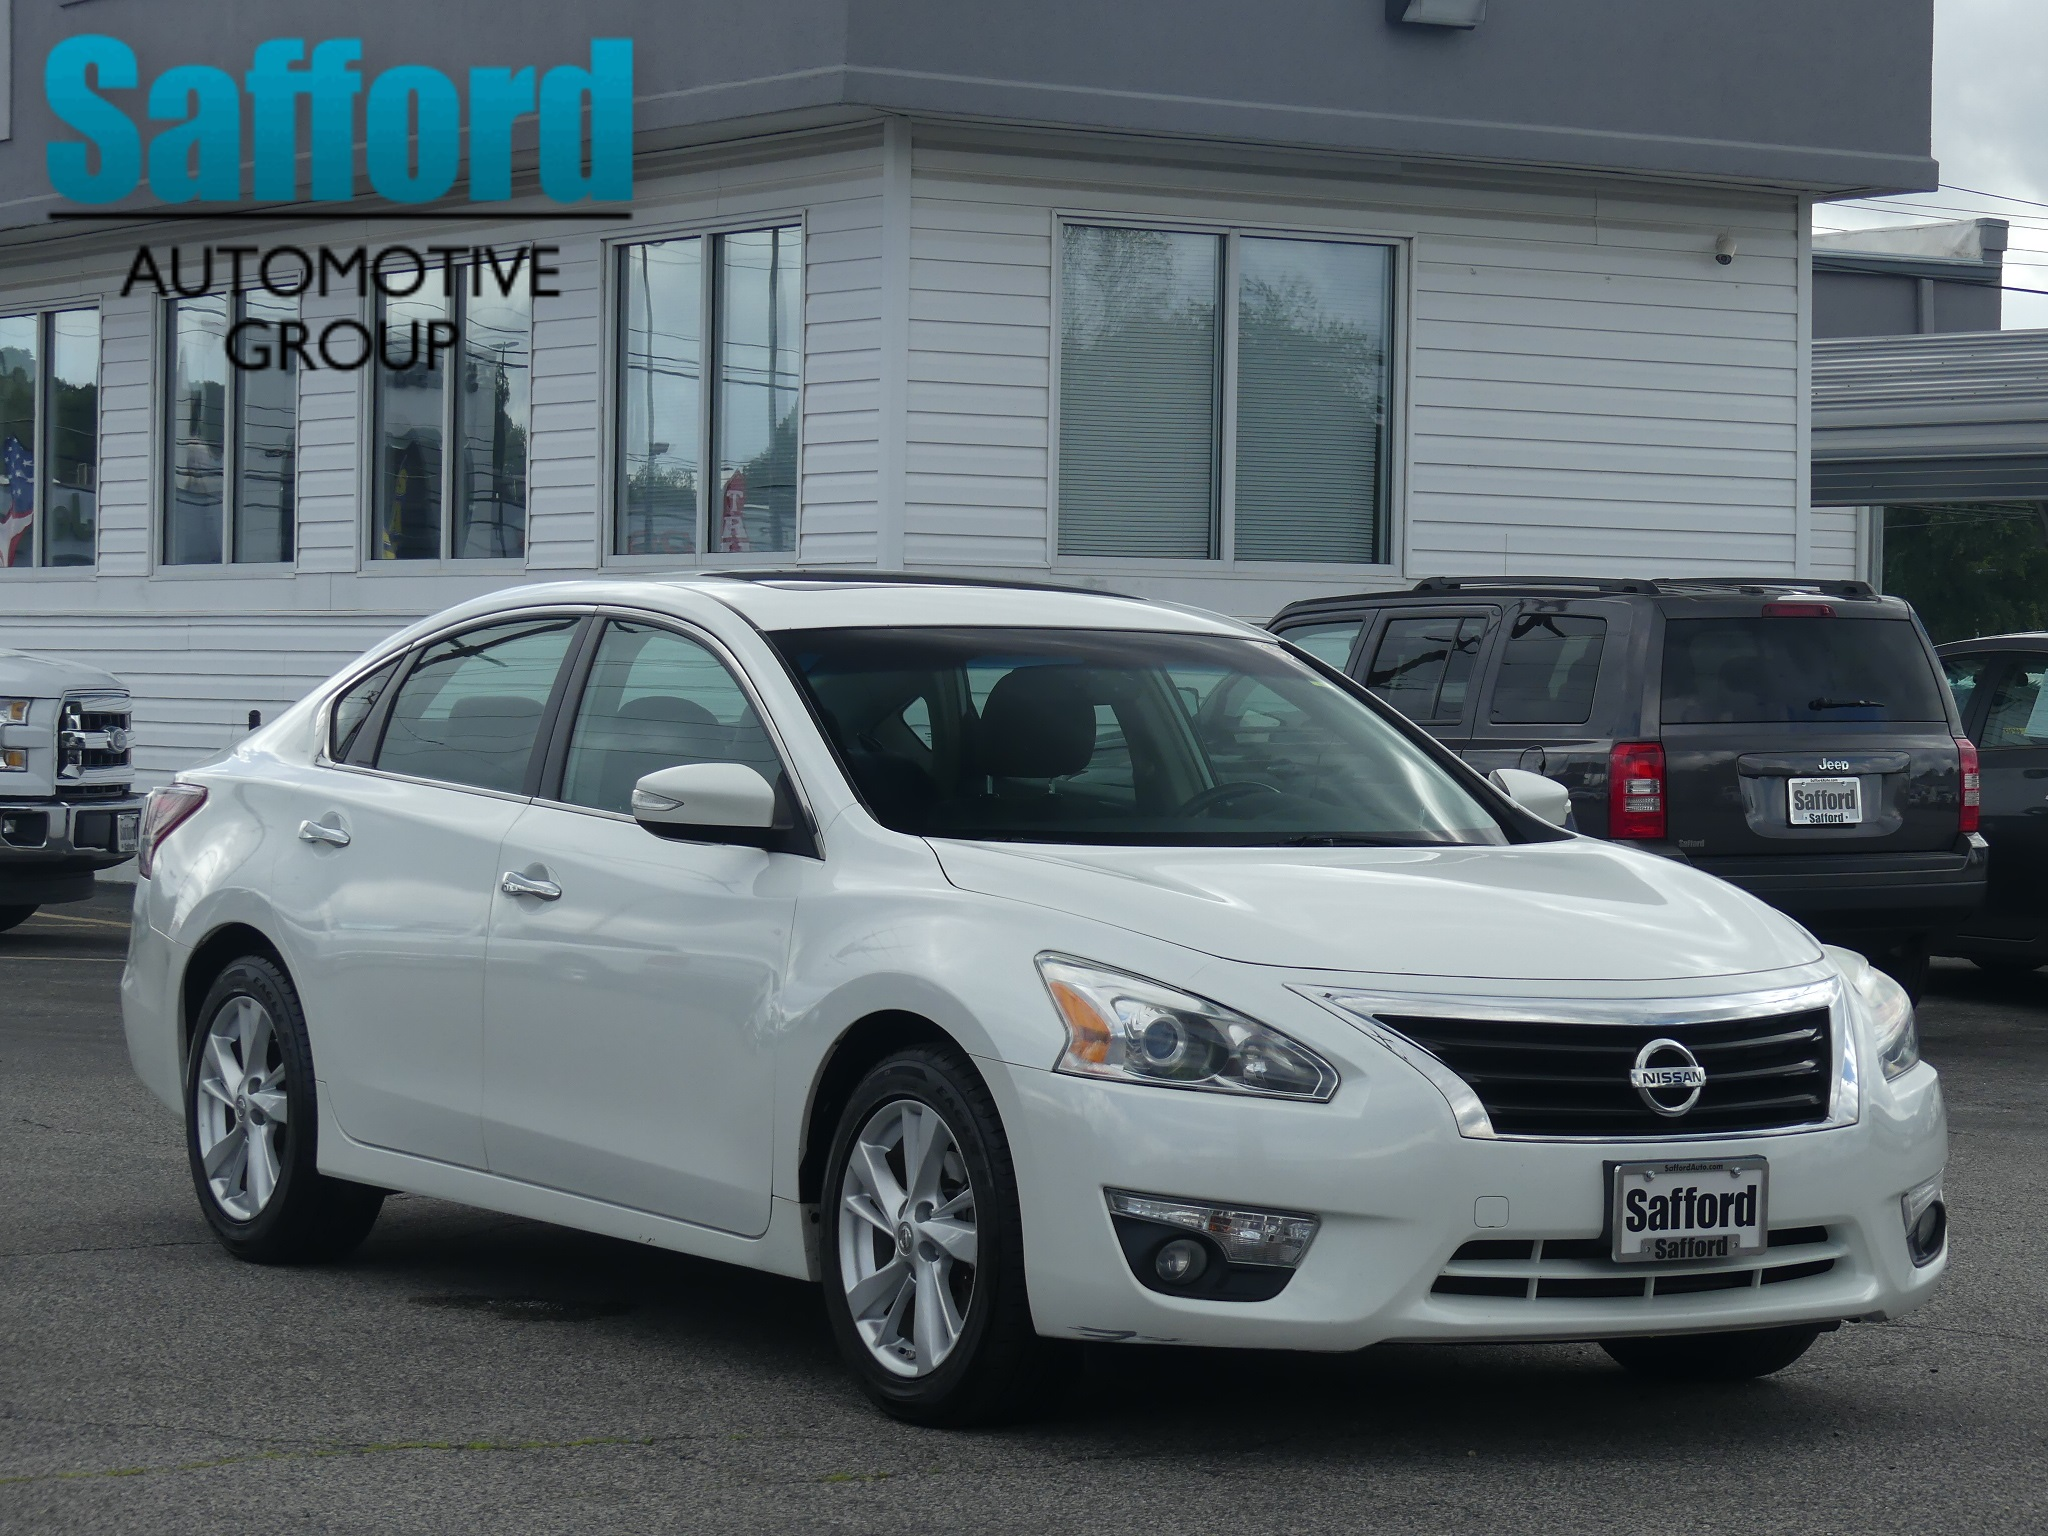 Amazing Pre Owned 2013 Nissan Altima 2.5 SV